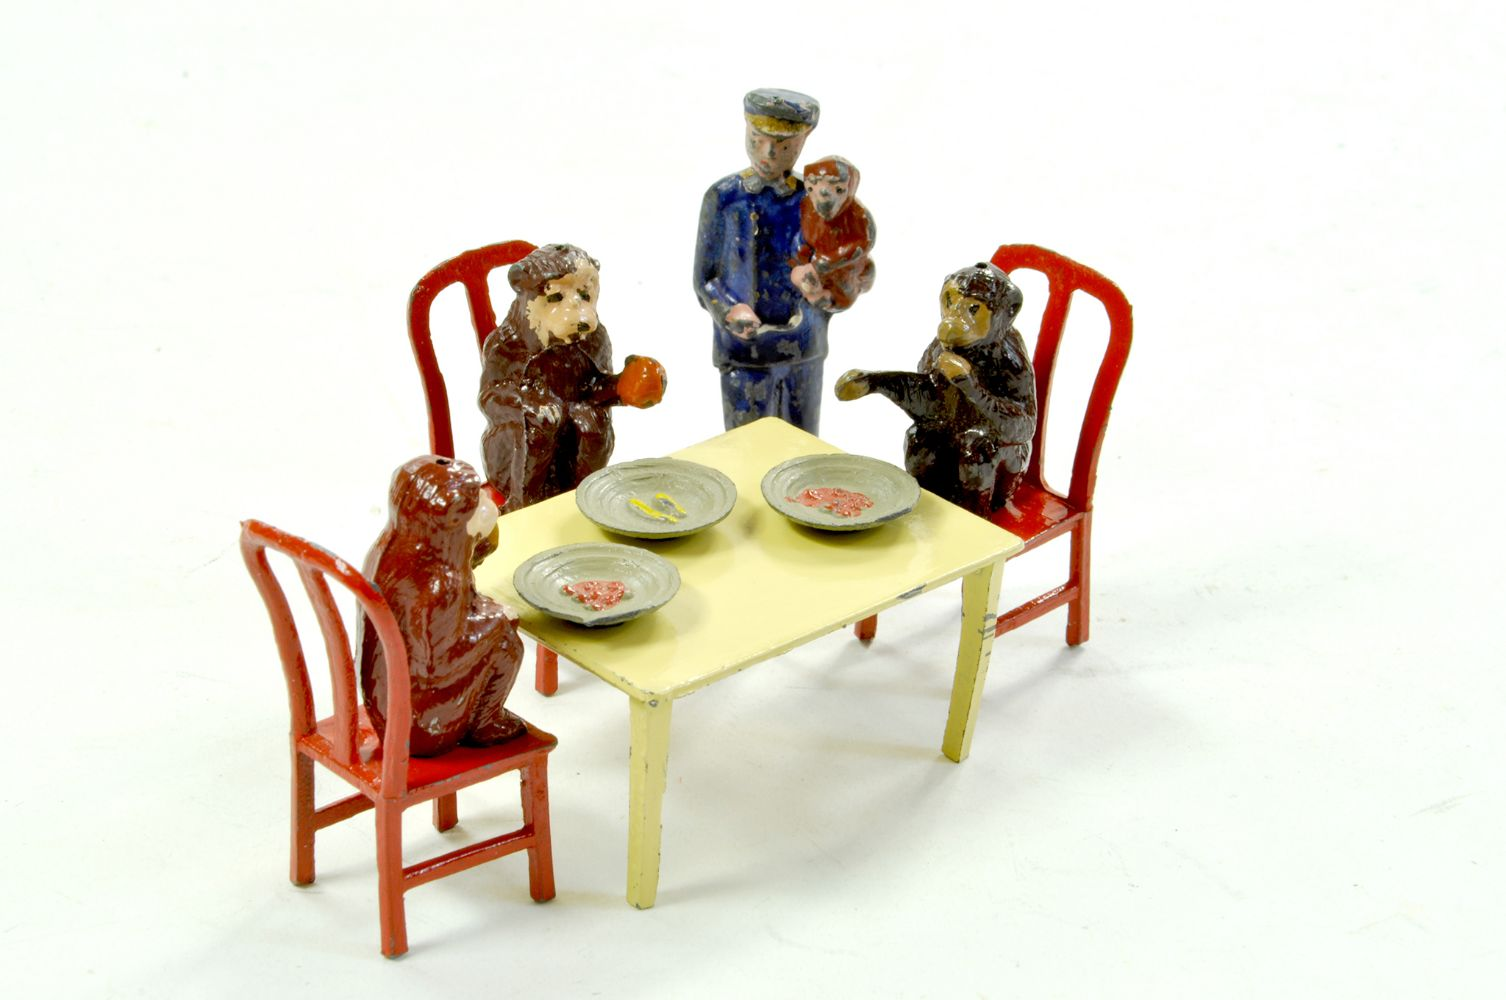 October Live Online Specialist Toy & Model Auction - Figures, Dolls, Bears, Action Man, Aircraft